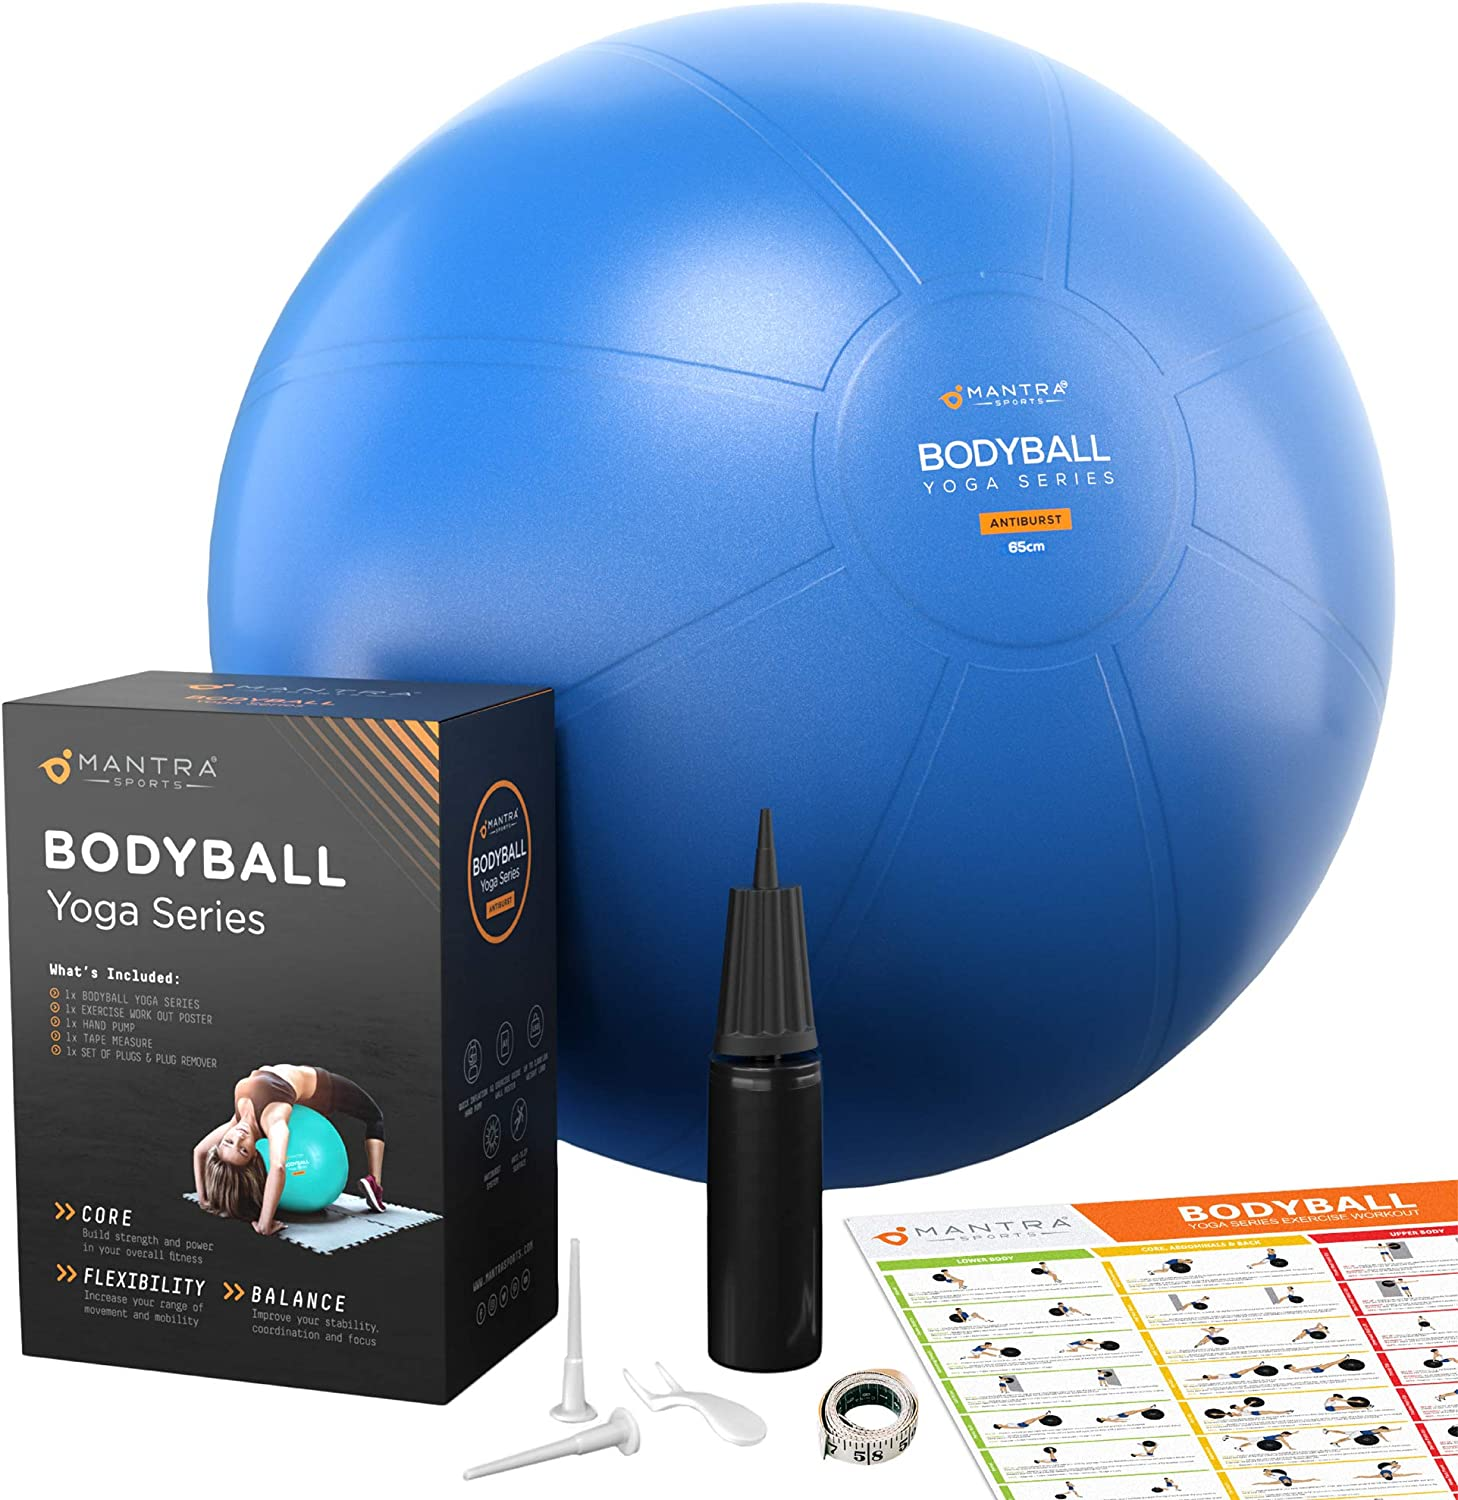 Exercise Ball | Stability Ball for Fitness, Yoga, Pilates, Pregnancy, Birthing or Office Desk Chair - 65cm Extra Thick, Anti-Burst & Non-Slip, Gym Quality Workout Ball For Adults - With Pump & Guide